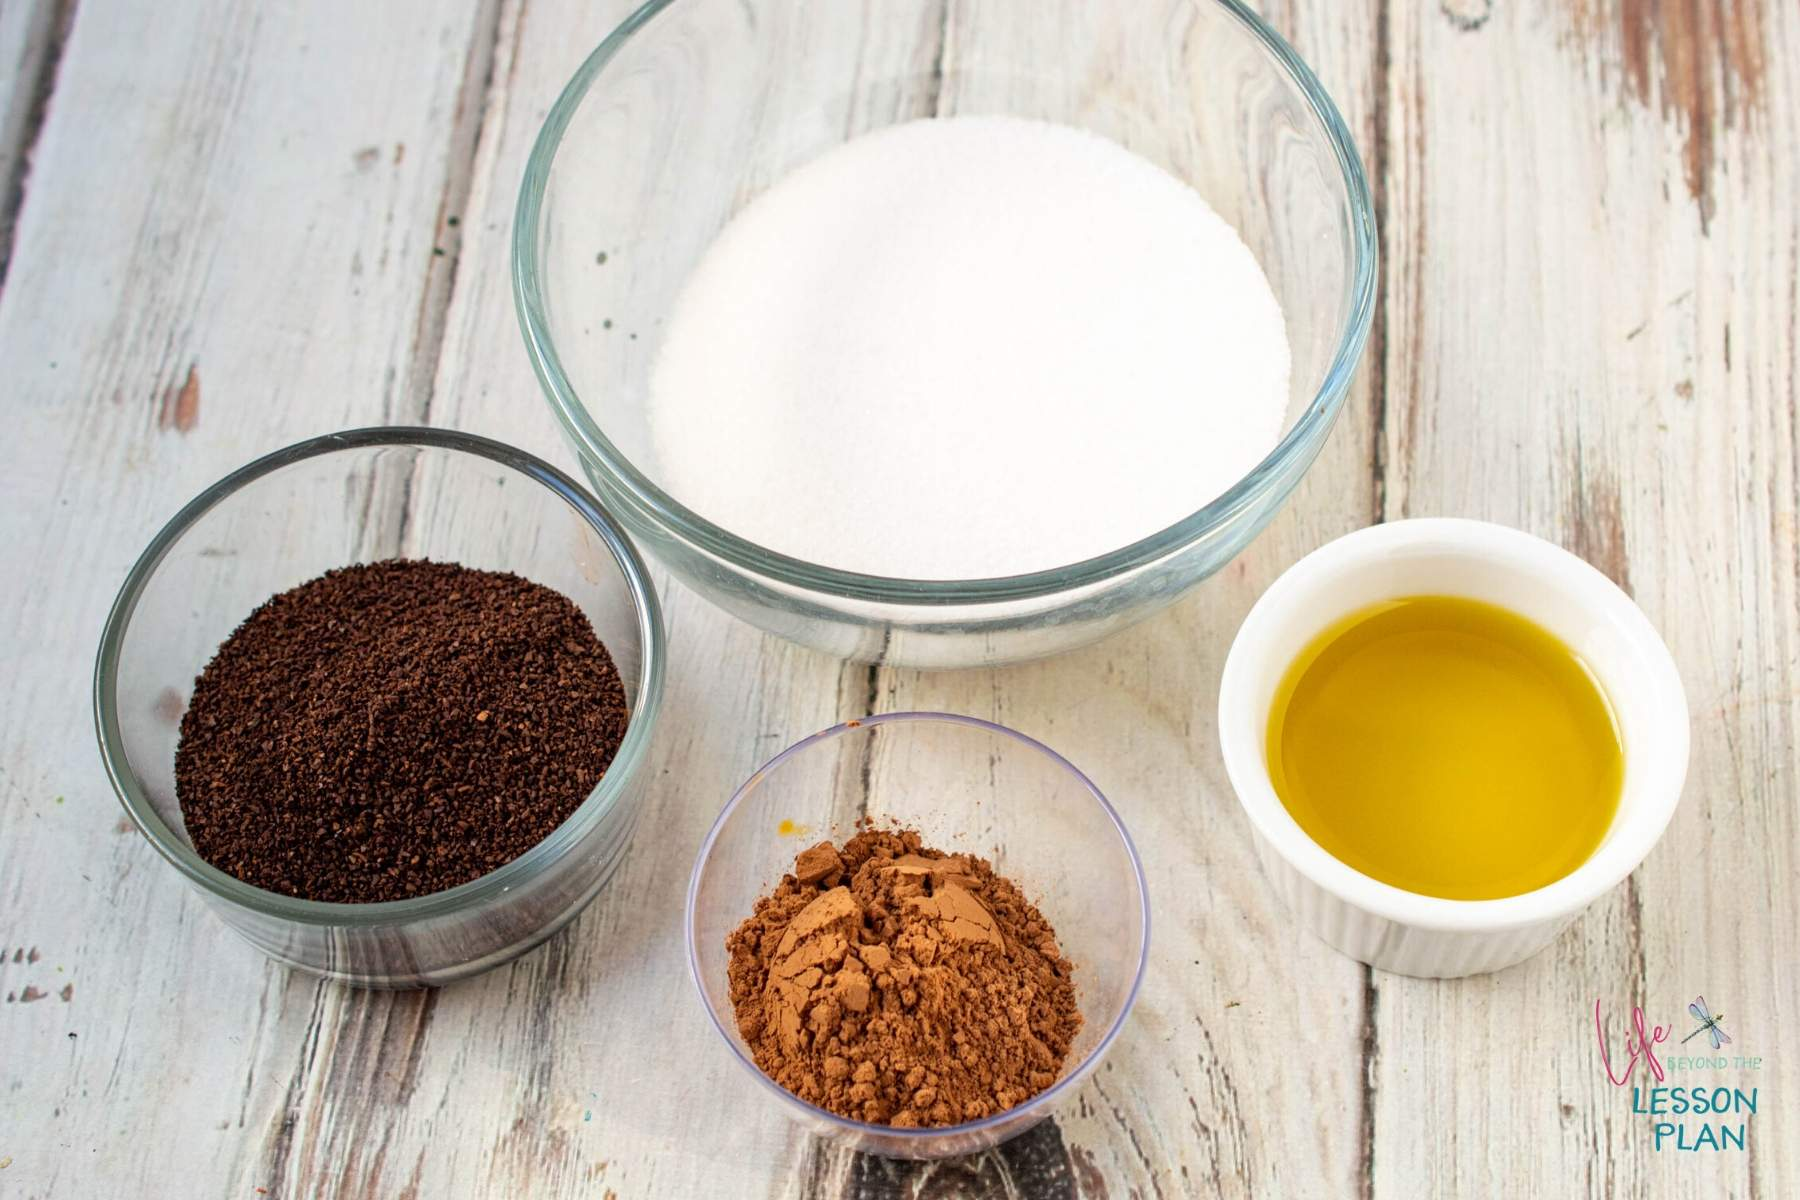 DIY Mocha Body Scrub ingredients in separate bowls